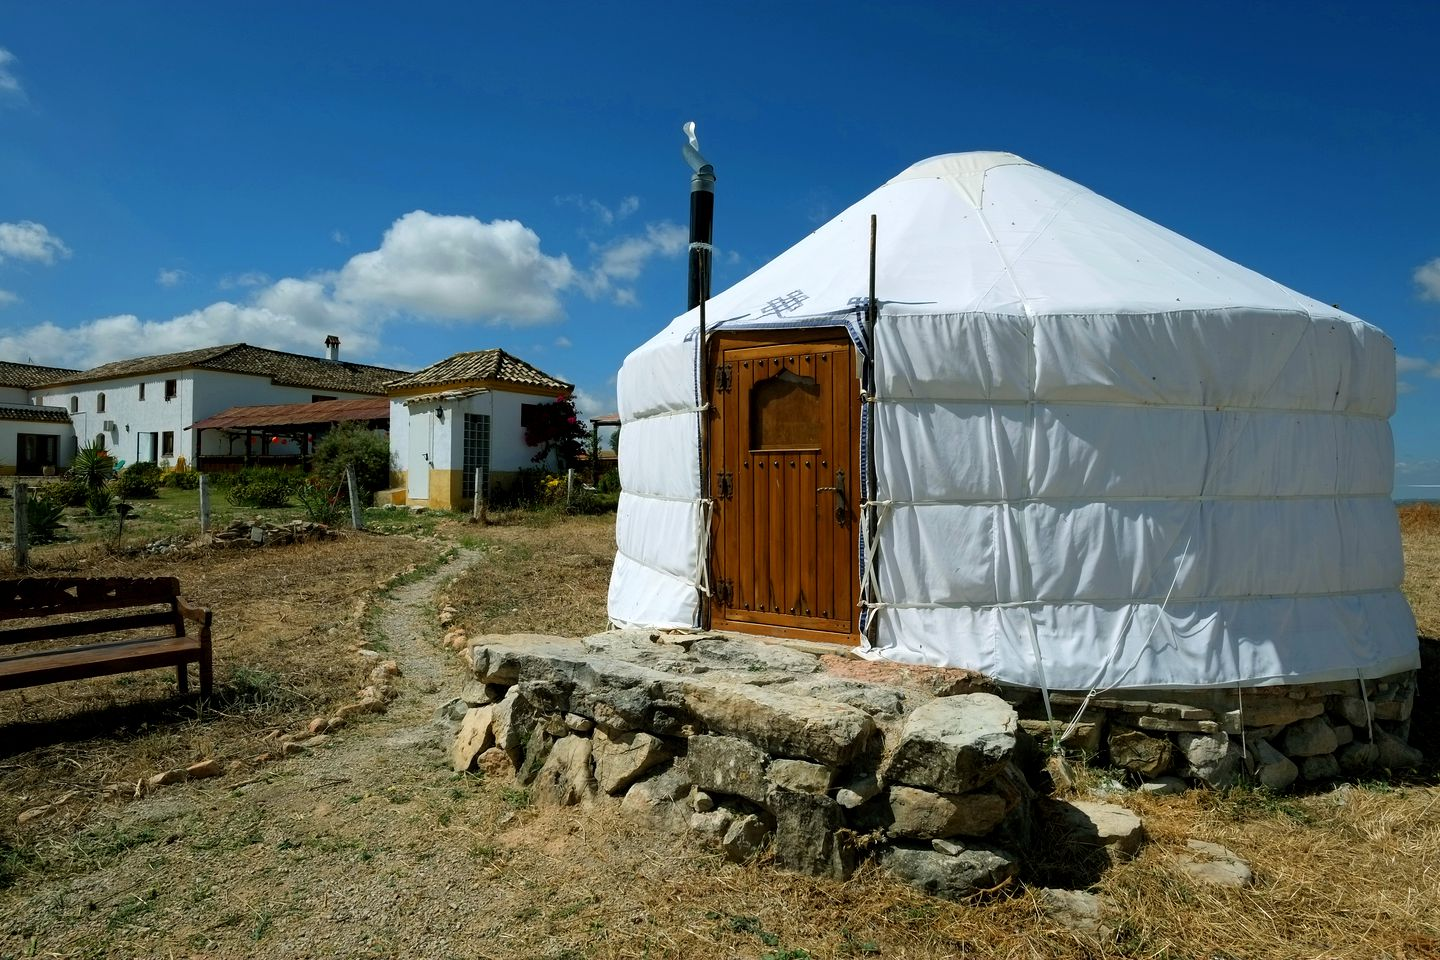 Luxury Yurt At Yoga Retreat In Andalusia Spain